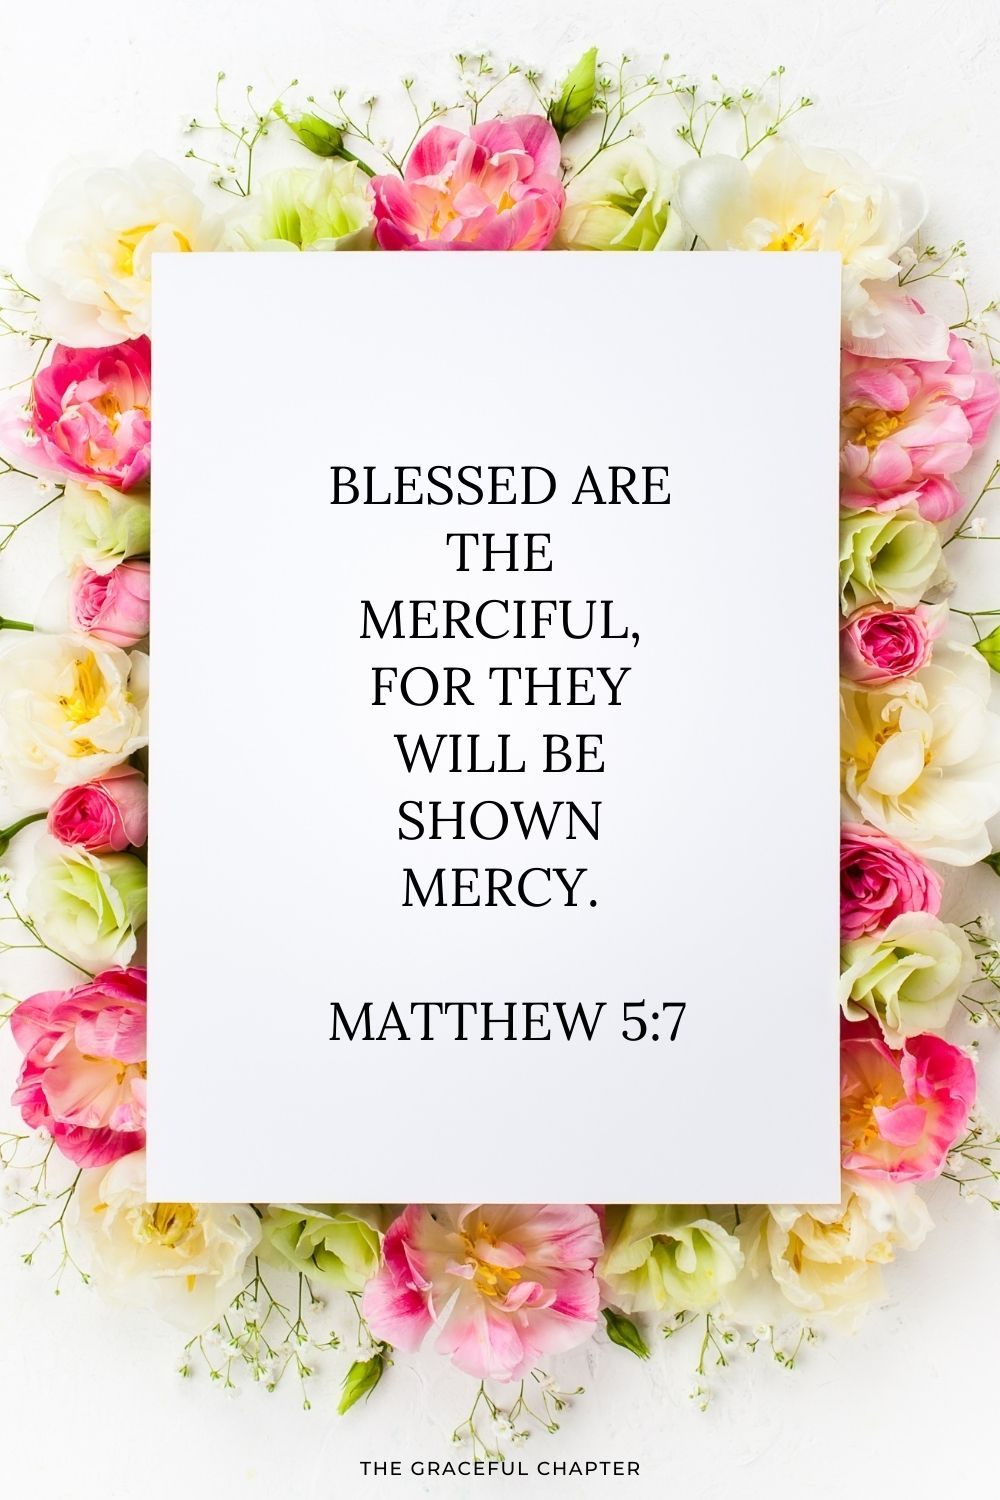 Blessed are the merciful, for they will be shown mercy.  Matthew 5:7